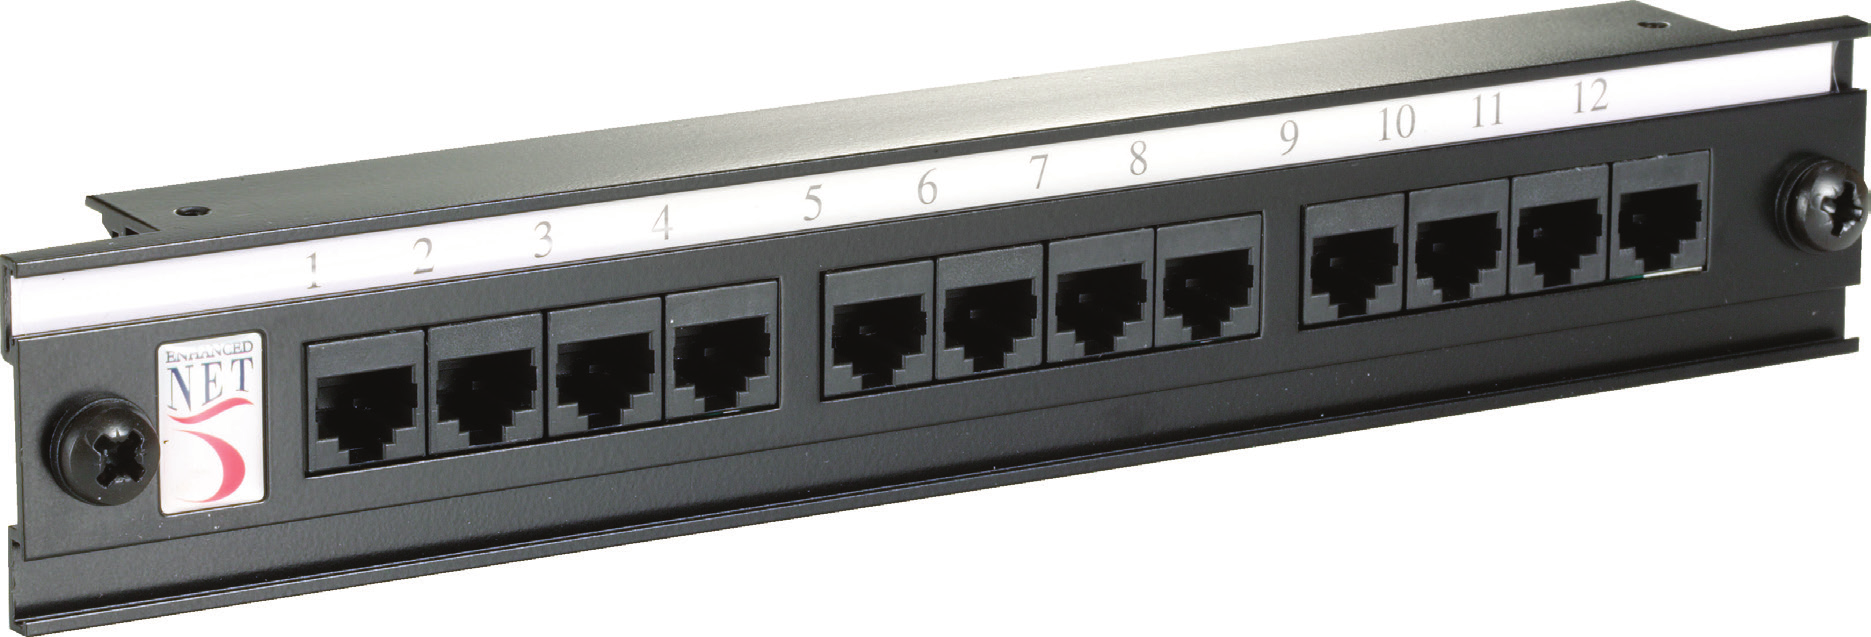 Structured Cabling Introduction Installation Guide Pdf Diy Wiring Detail Patch Panel Port Number Designation Strip